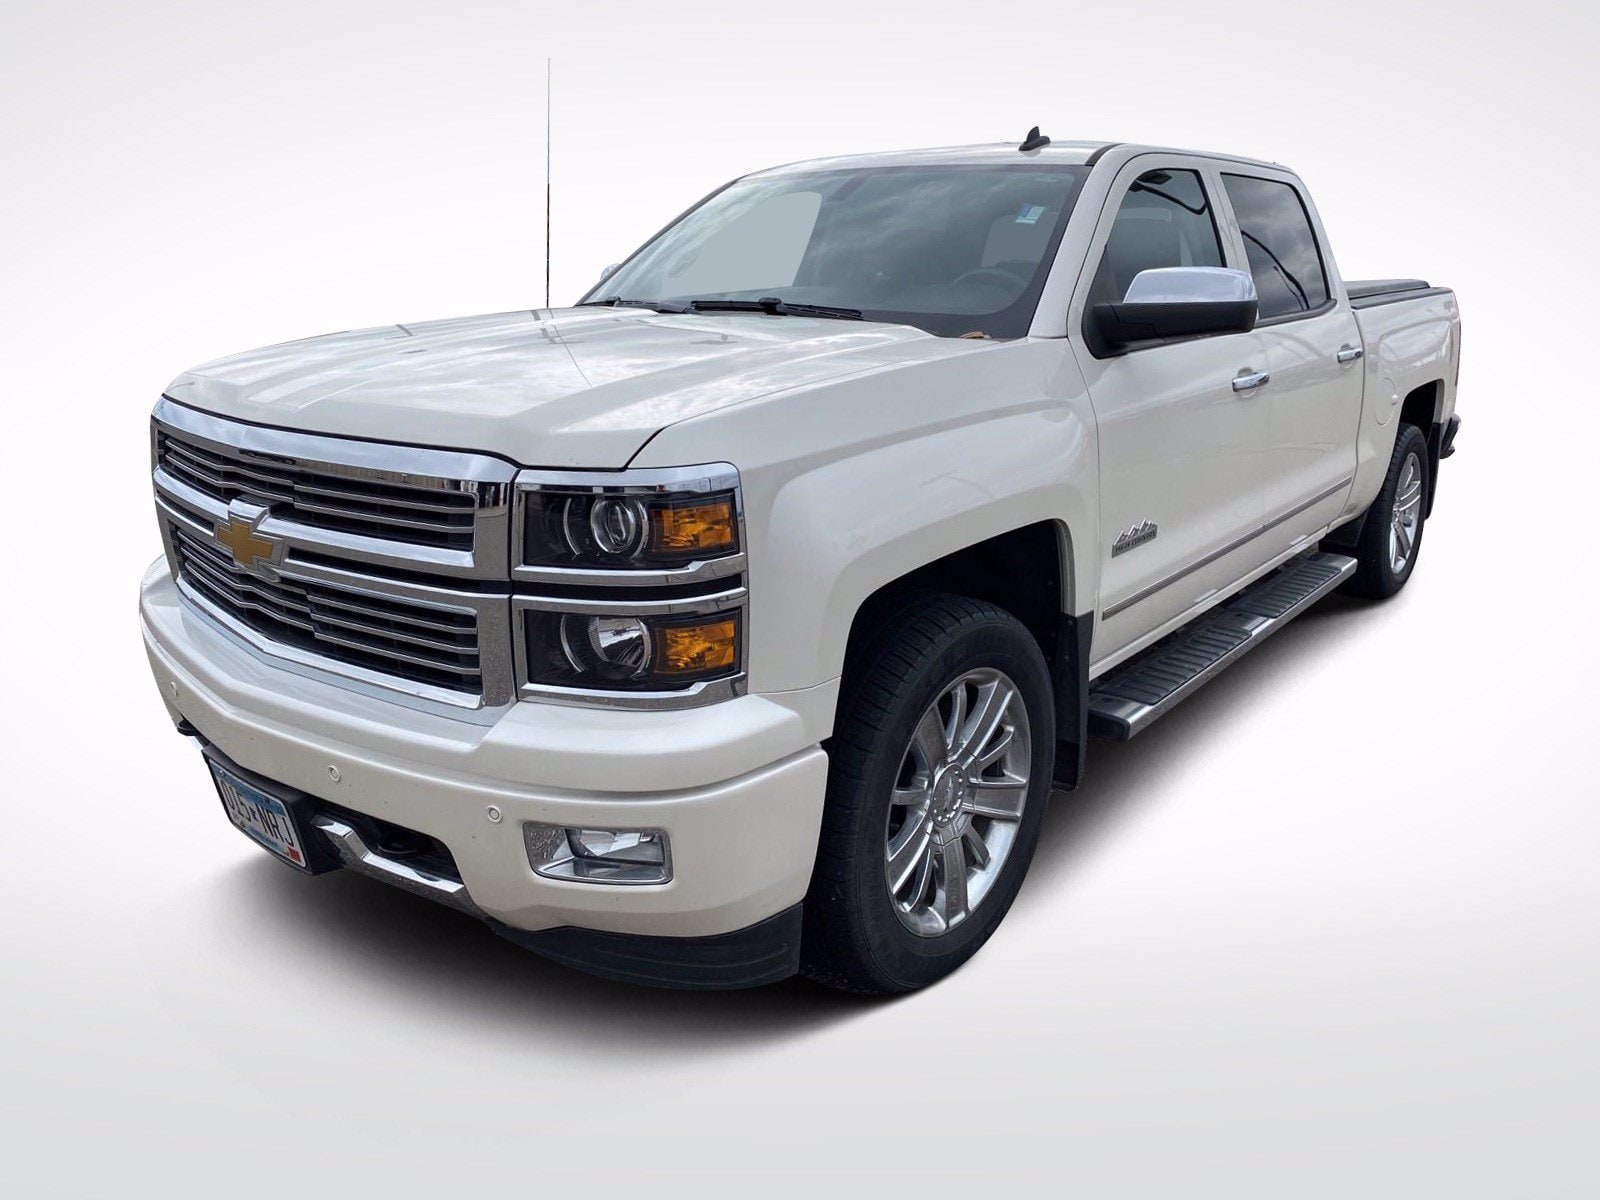 Used 2014 Chevrolet Silverado 1500 High Country with VIN 3GCUKTEC5EG383498 for sale in Baxter, Minnesota